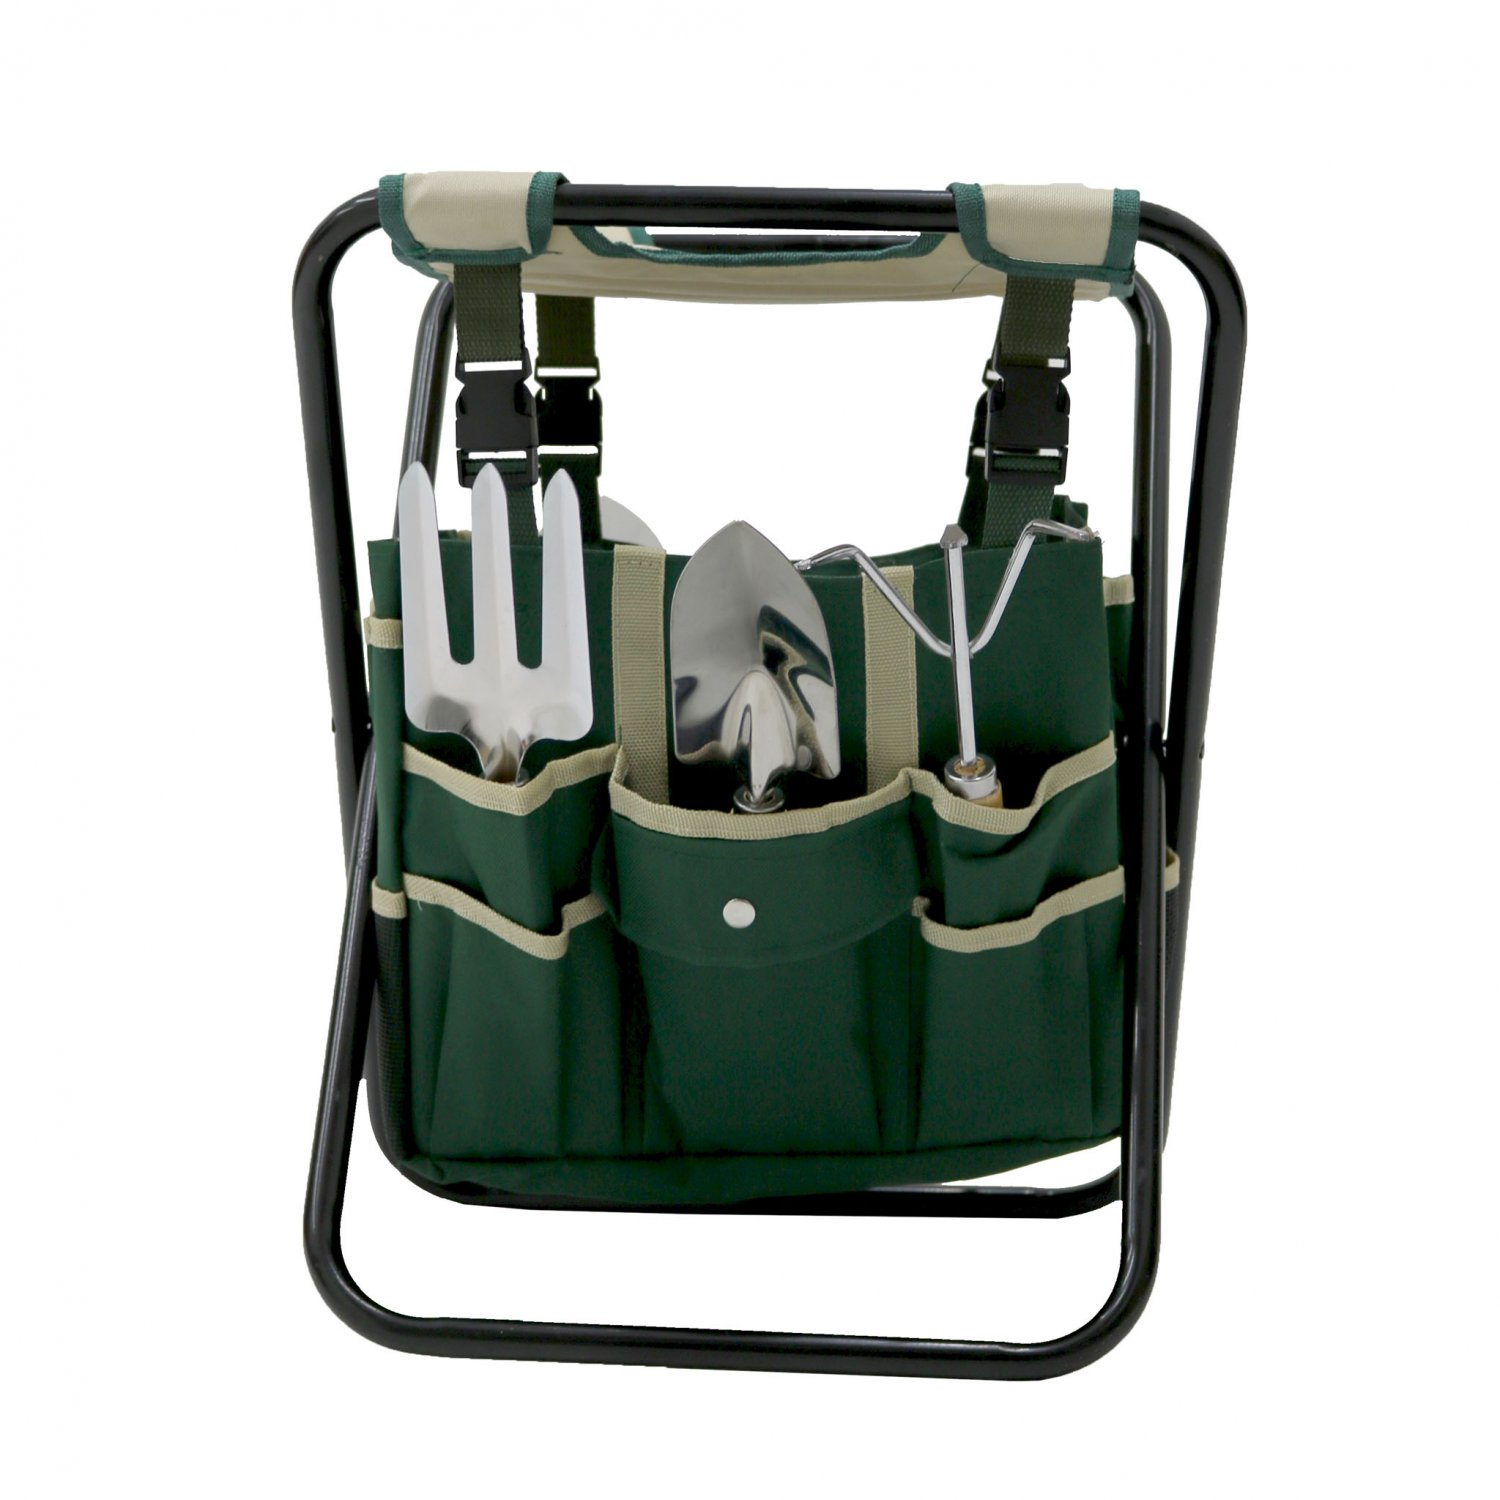 Folding Gardeners Stool With 5pc Tools And Storage Bag